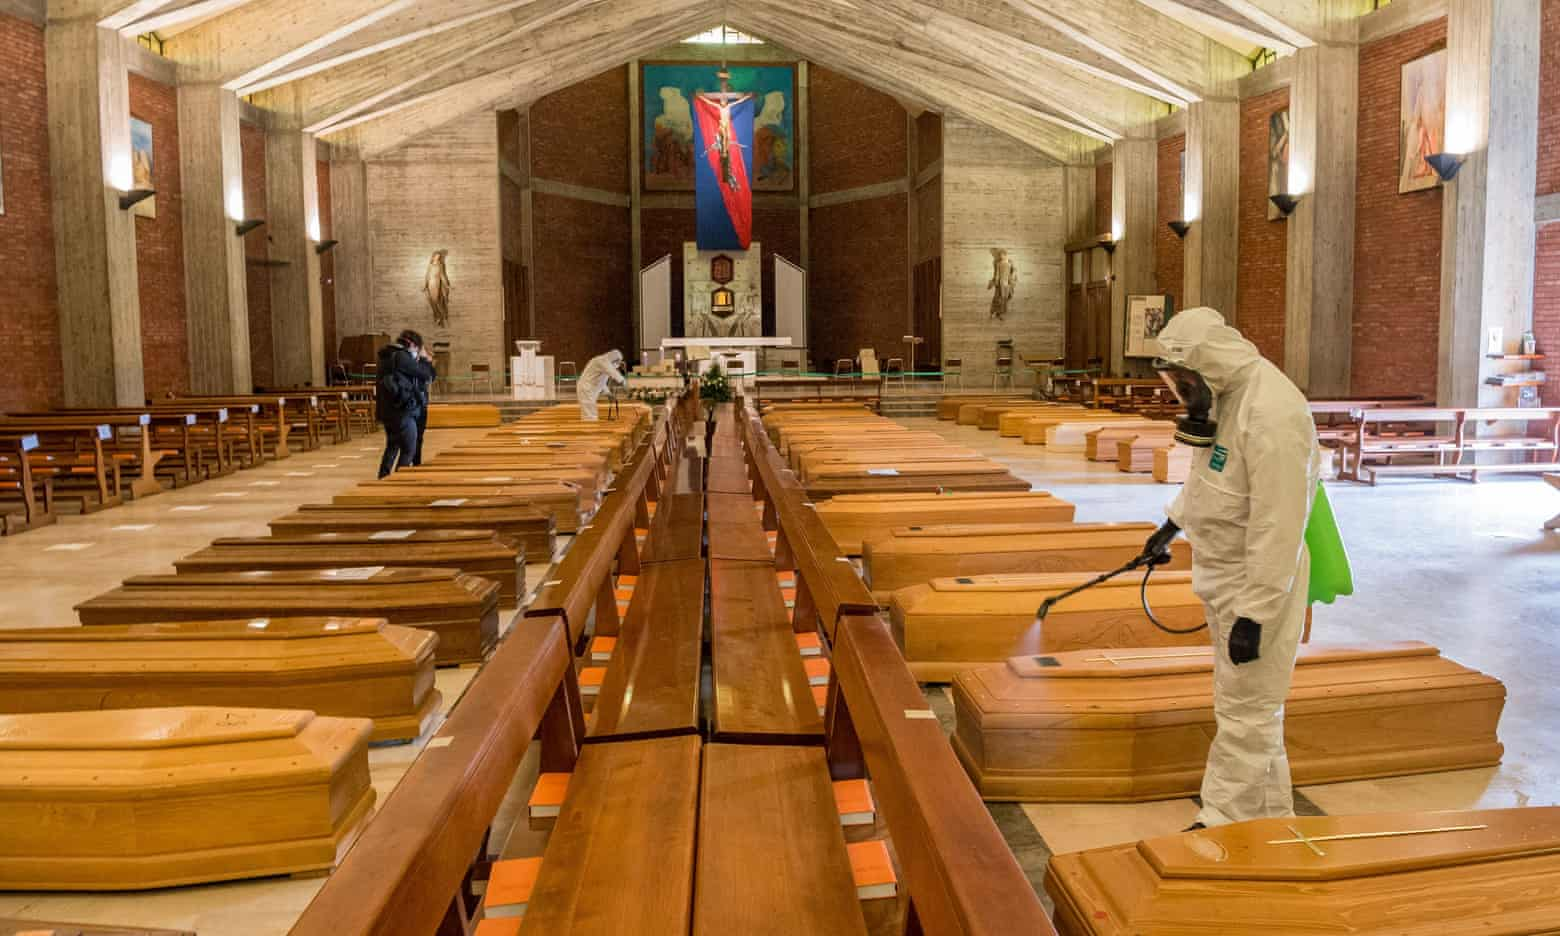 Army medical staff clears the coffins in the church of San Giuseppe in Seriate, Italy. Photograph: Carlo Cozzoli/REX/Shutterstock